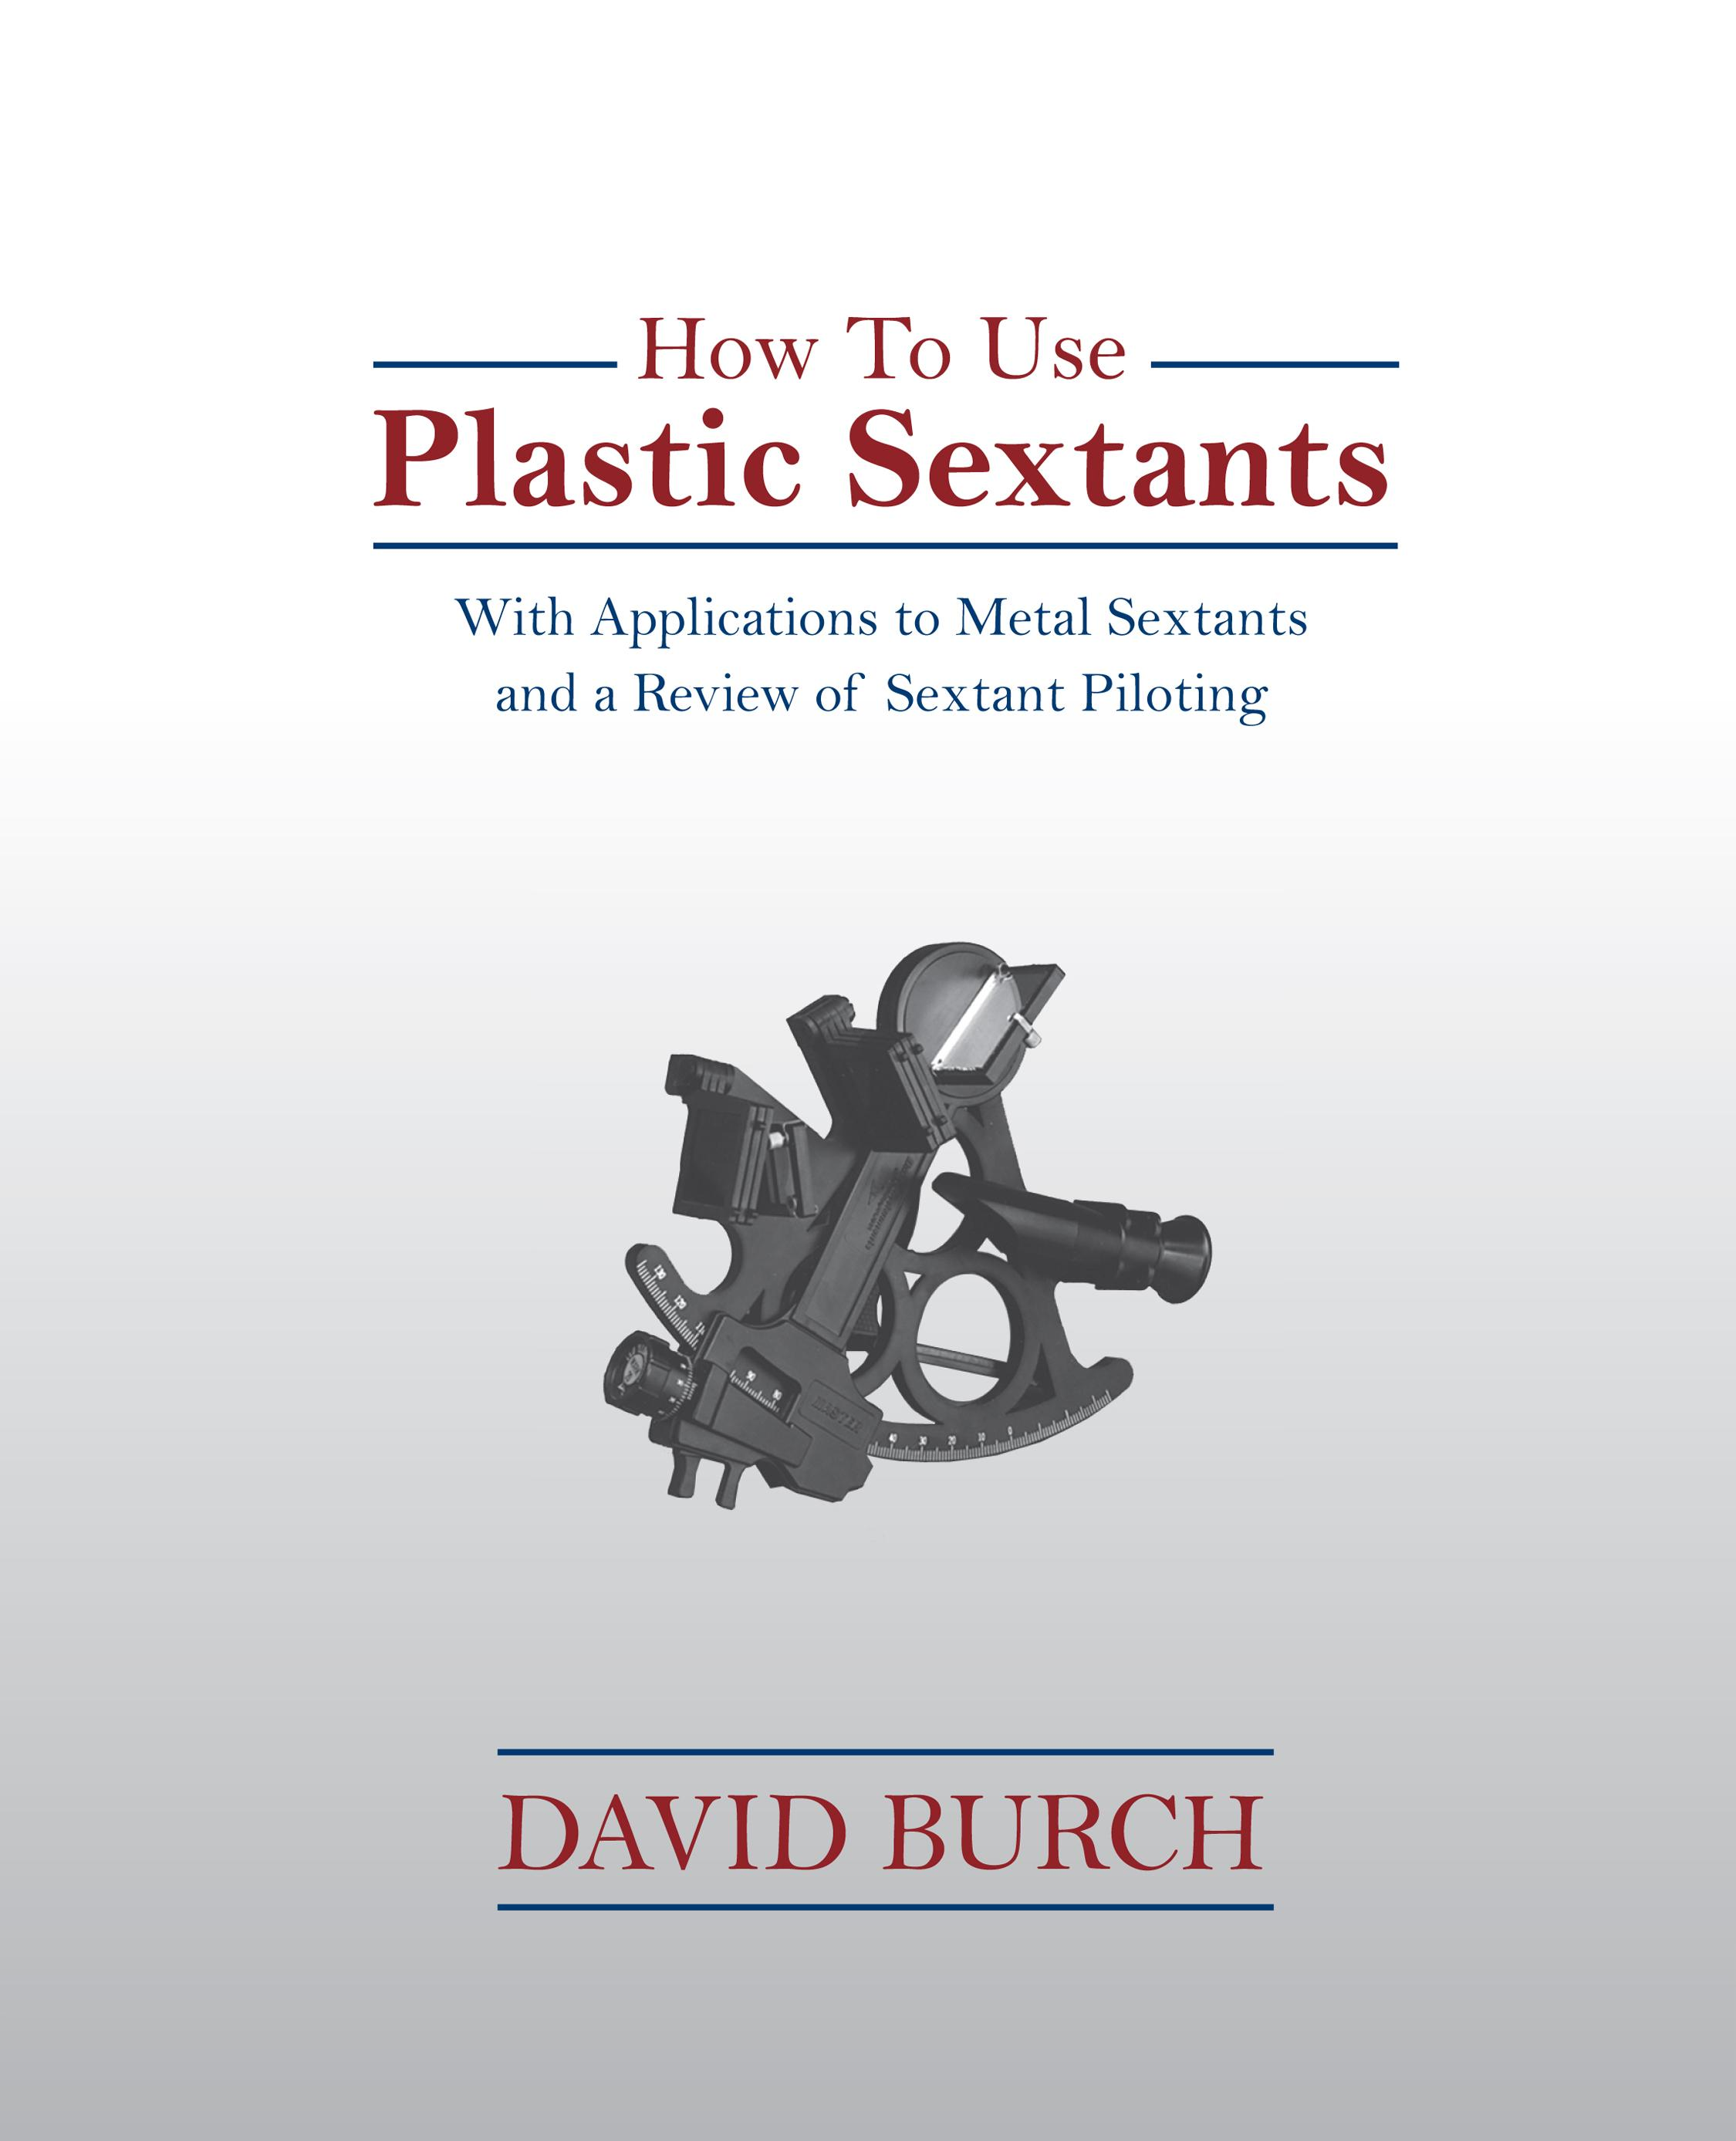 How To Use Plastic Sextants - With Applications to Metal Sextants and a Review of Sextant Piloting EB2370003268447